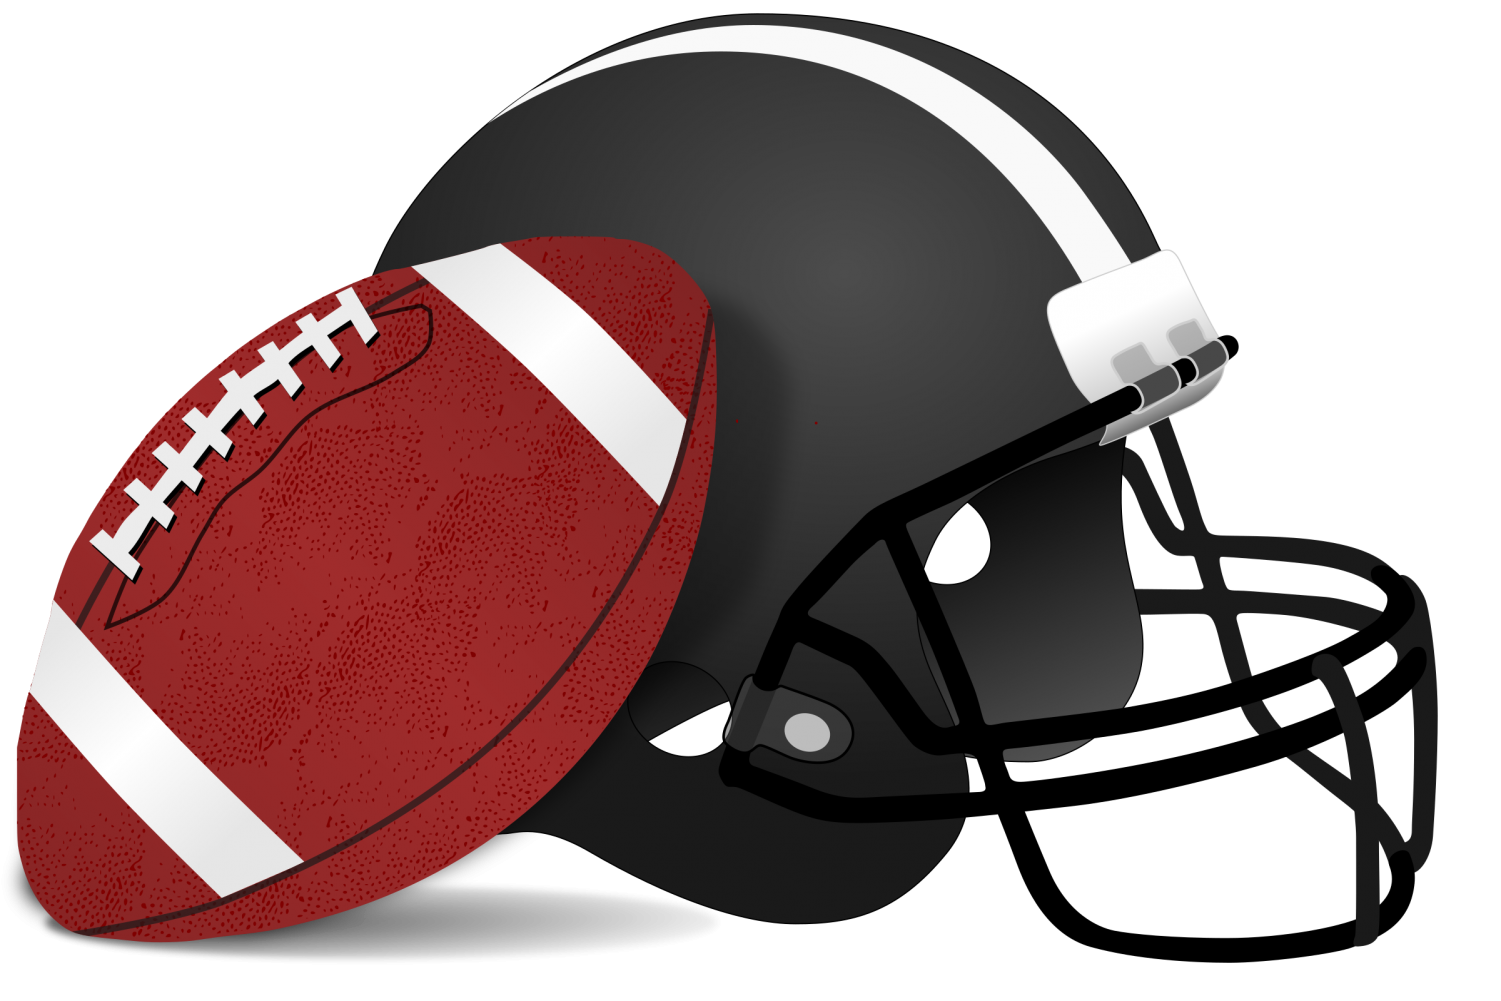 The medical community is concerned over the connection between football and head trauma.